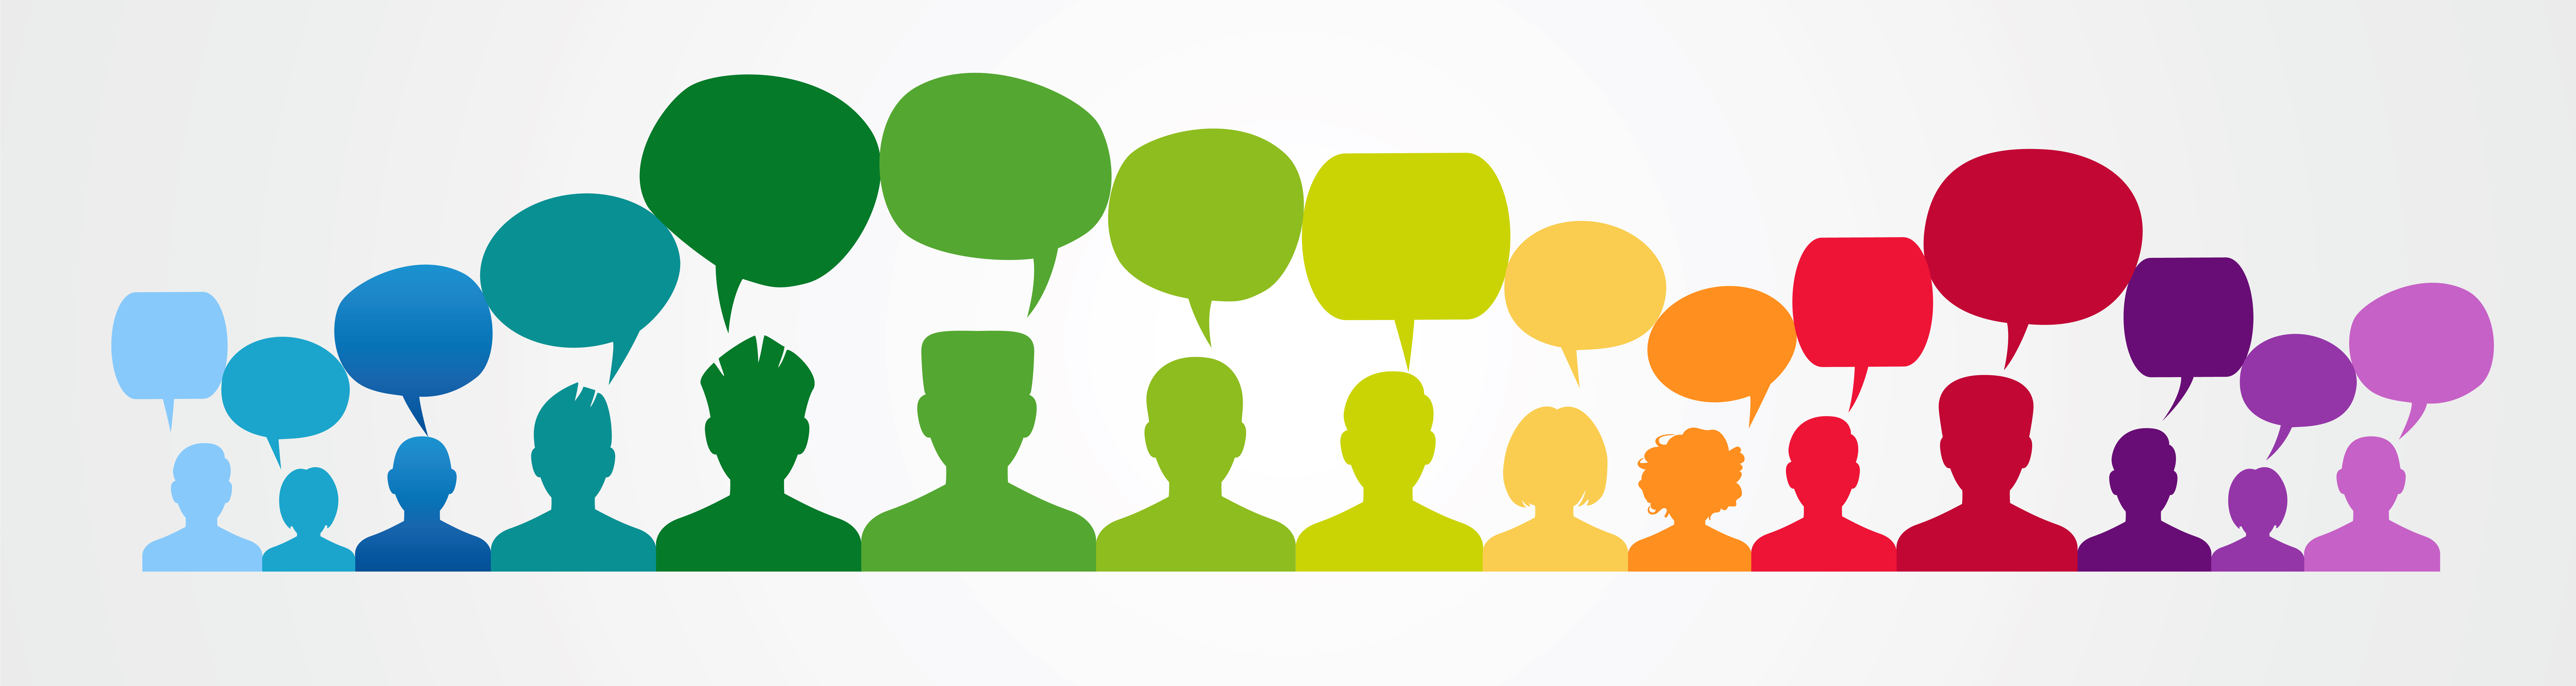 Banner of feedback bubbles